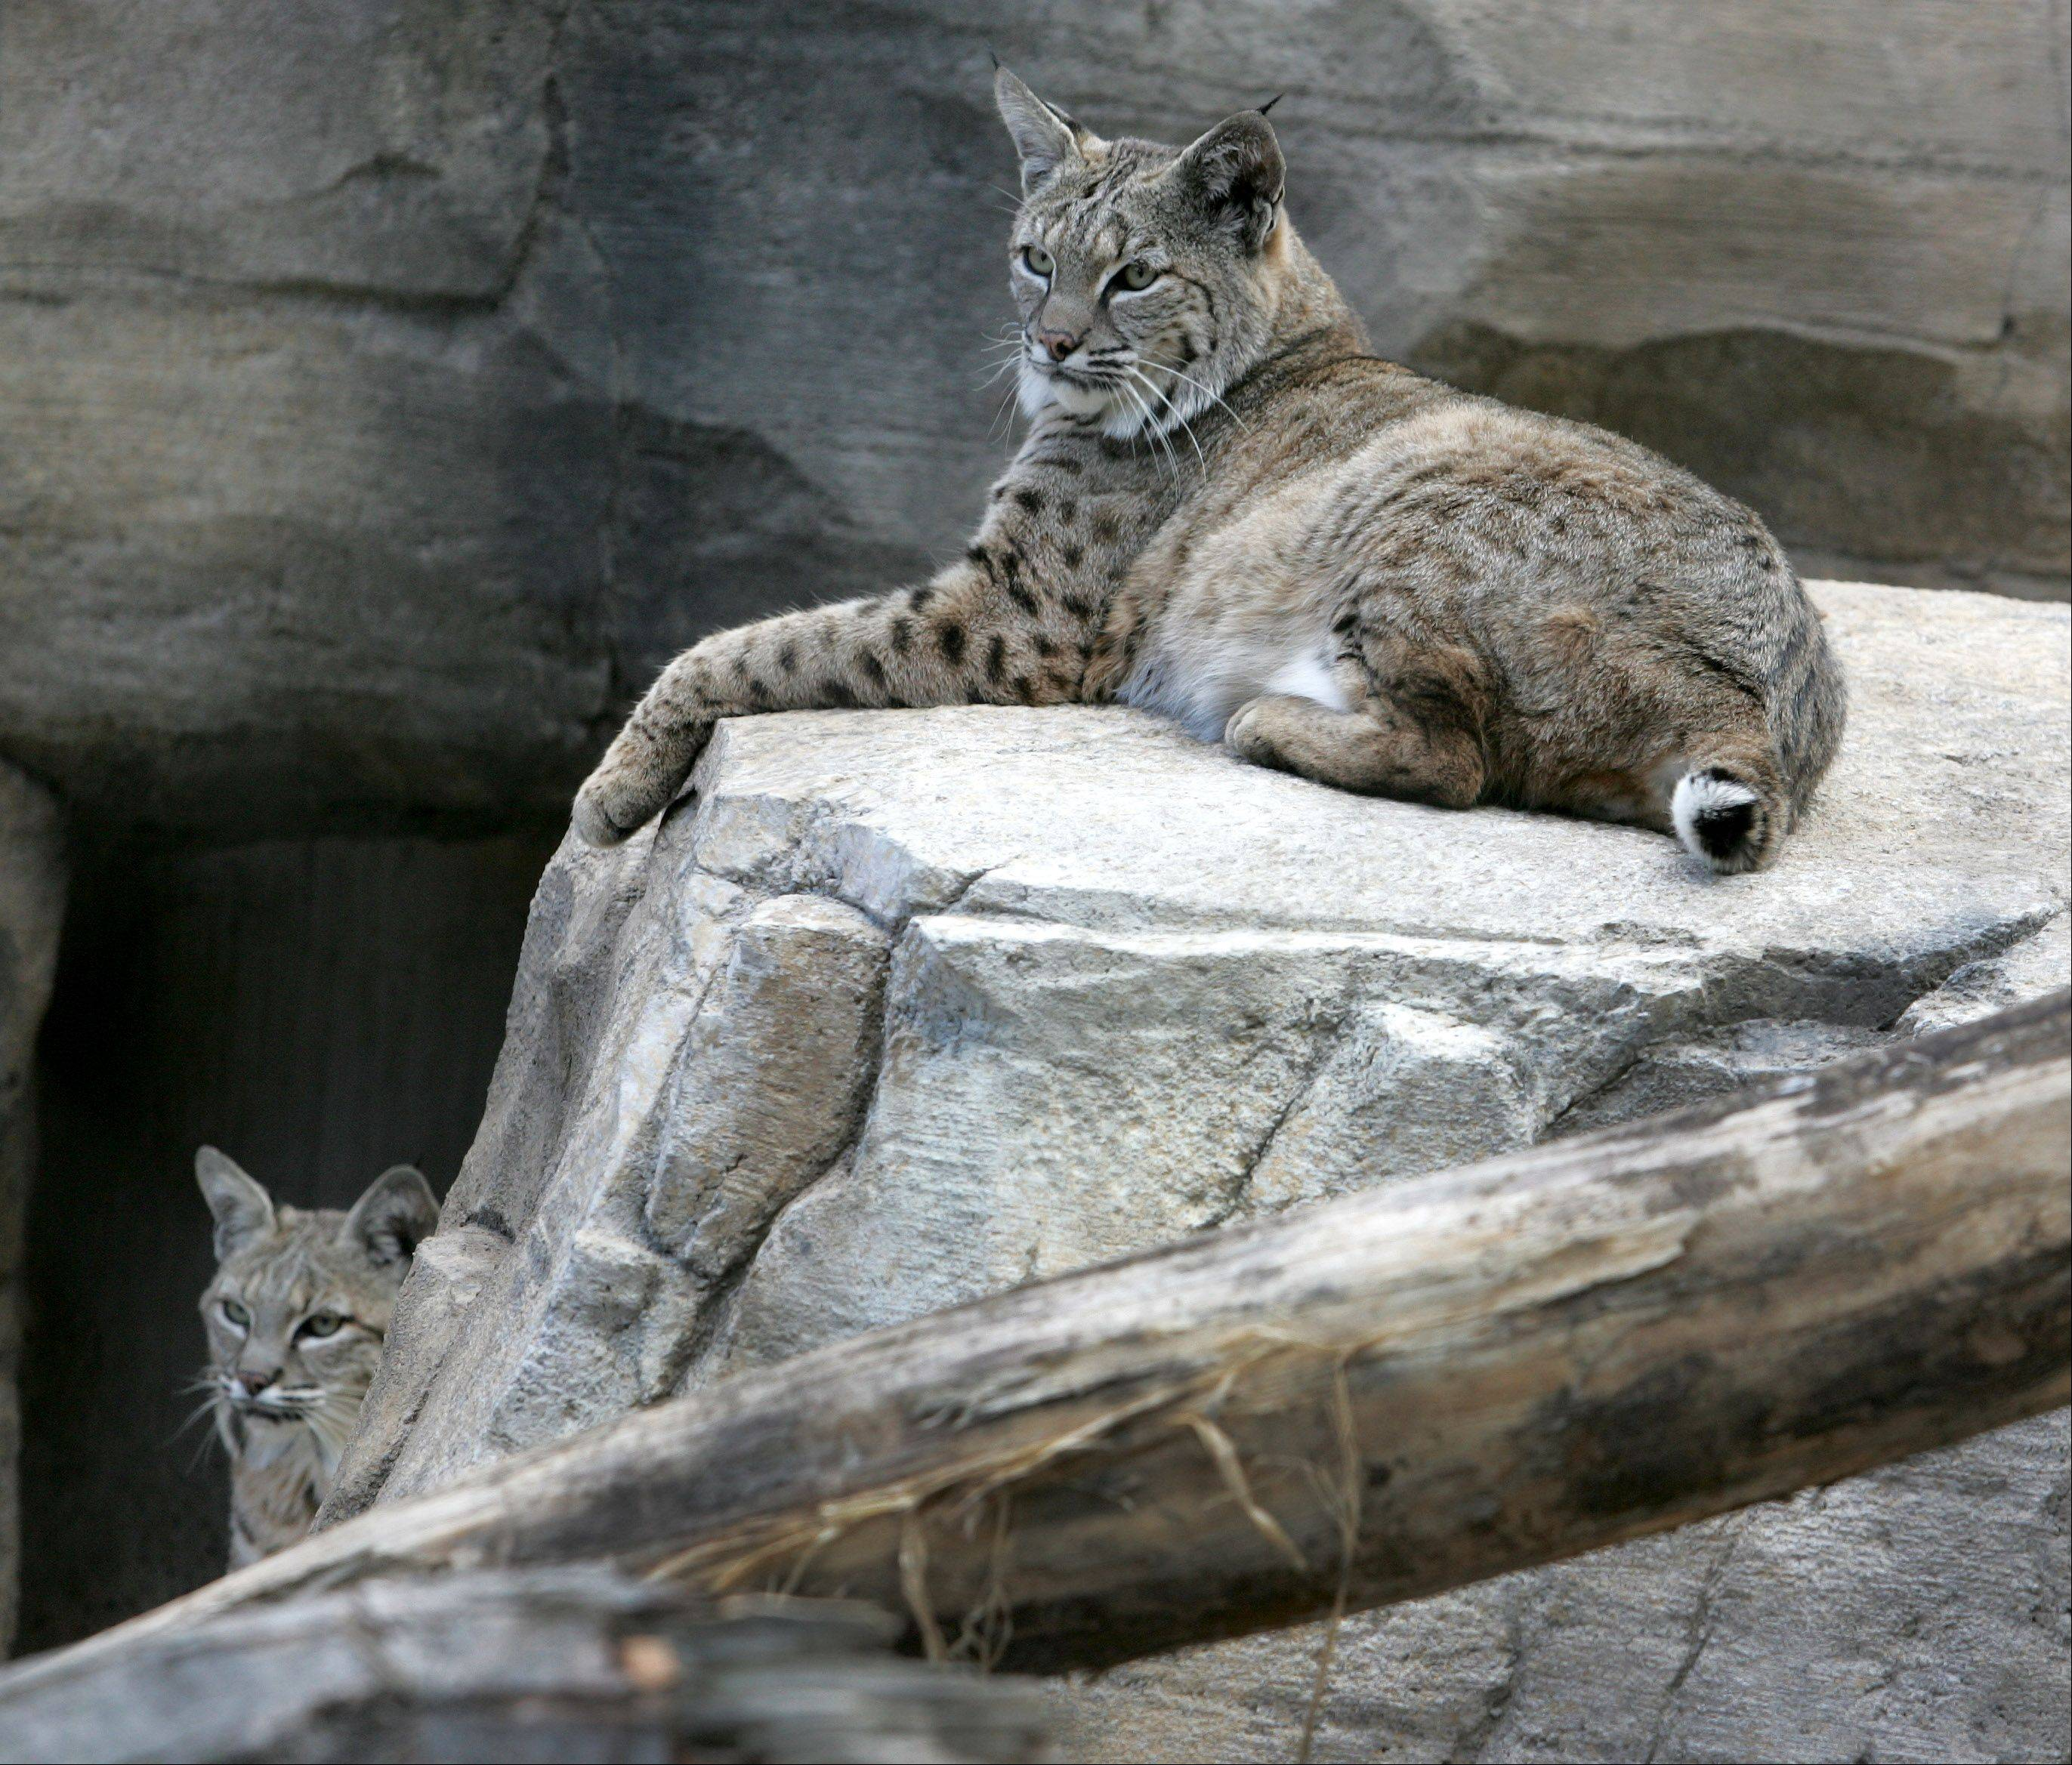 Salvatore, right, and his brother Valentino, left, are getting used to their new home at the new bobcat exhibit at Cosley Zoo in Wheaton.